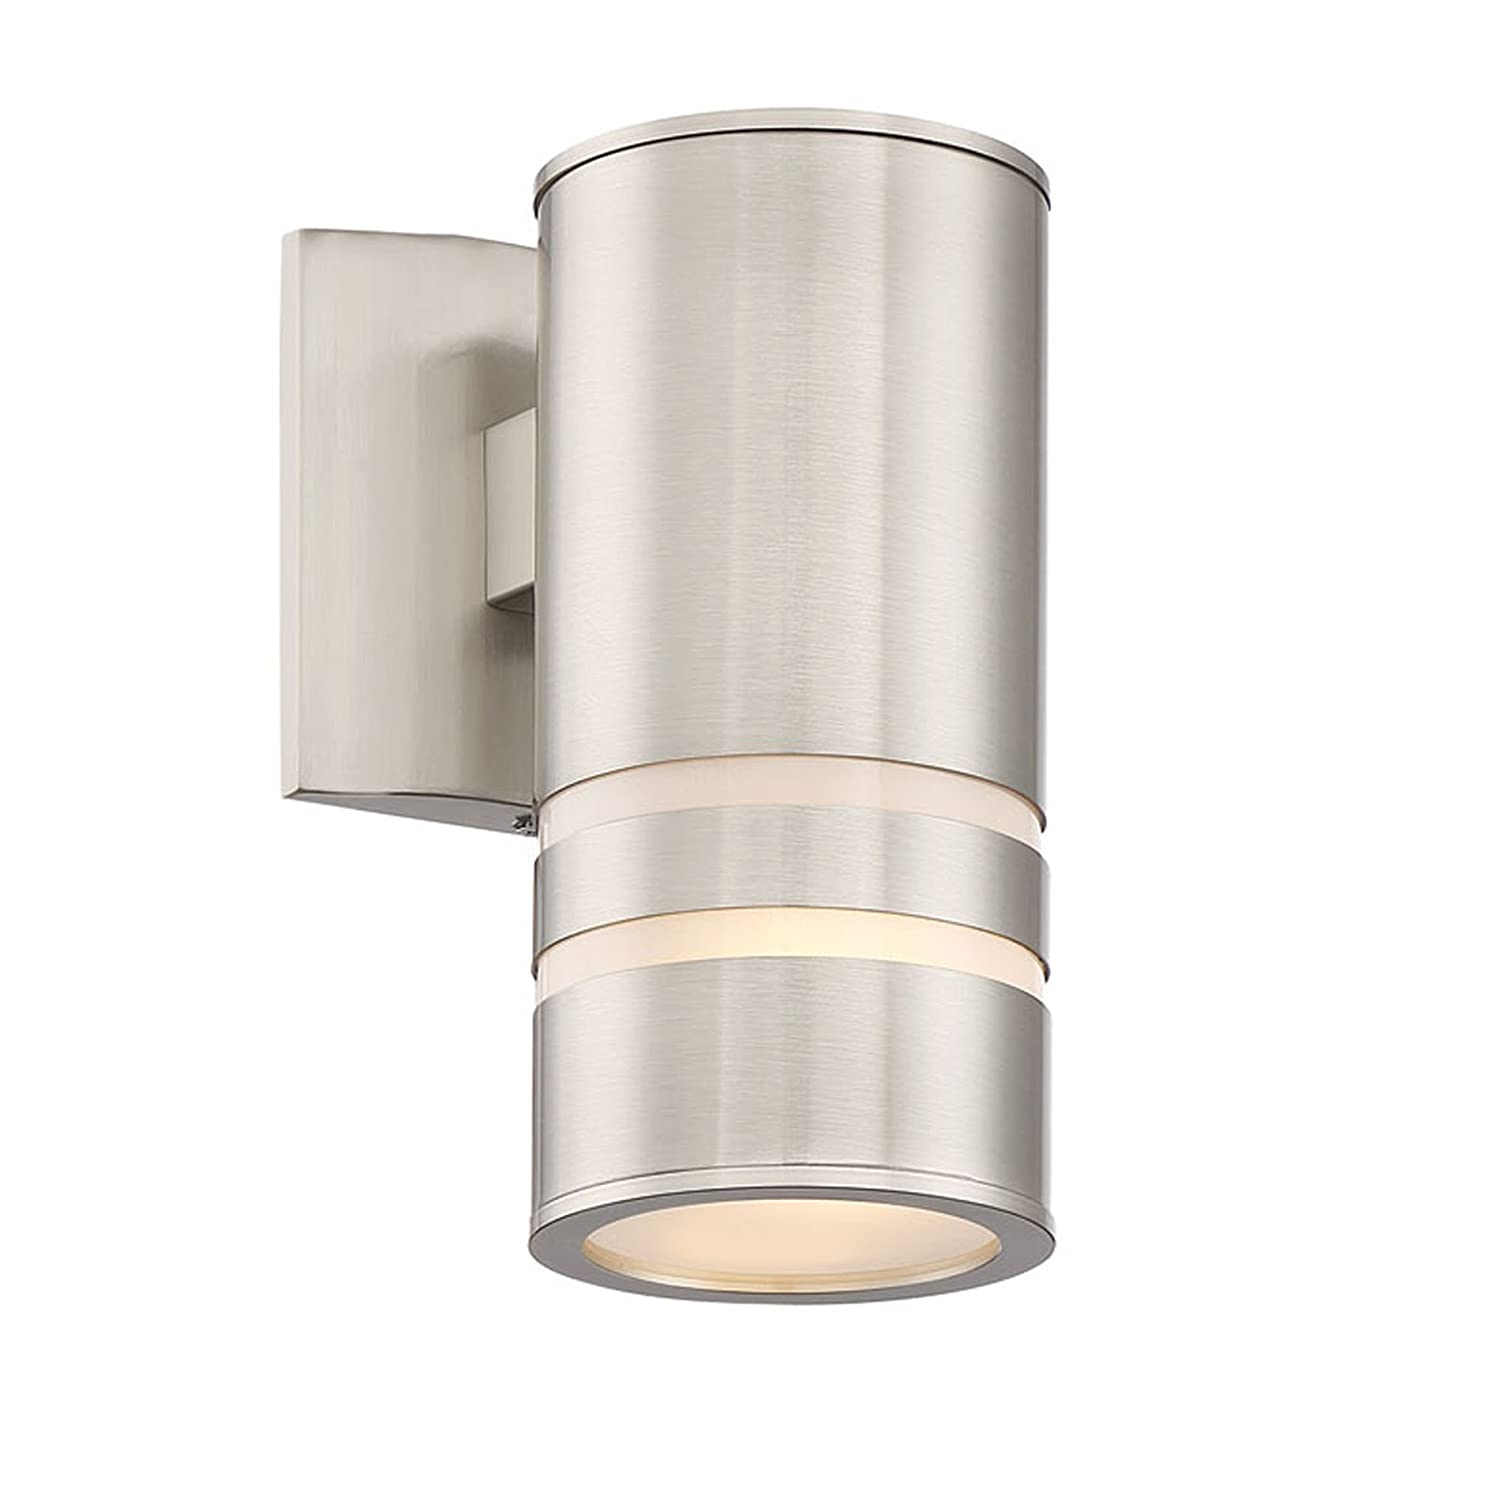 """Kira Home Rockwell 8.5"""" Modern Cylinder Outdoor Light/Wall Sconce, Brushed Nickel Finish"""